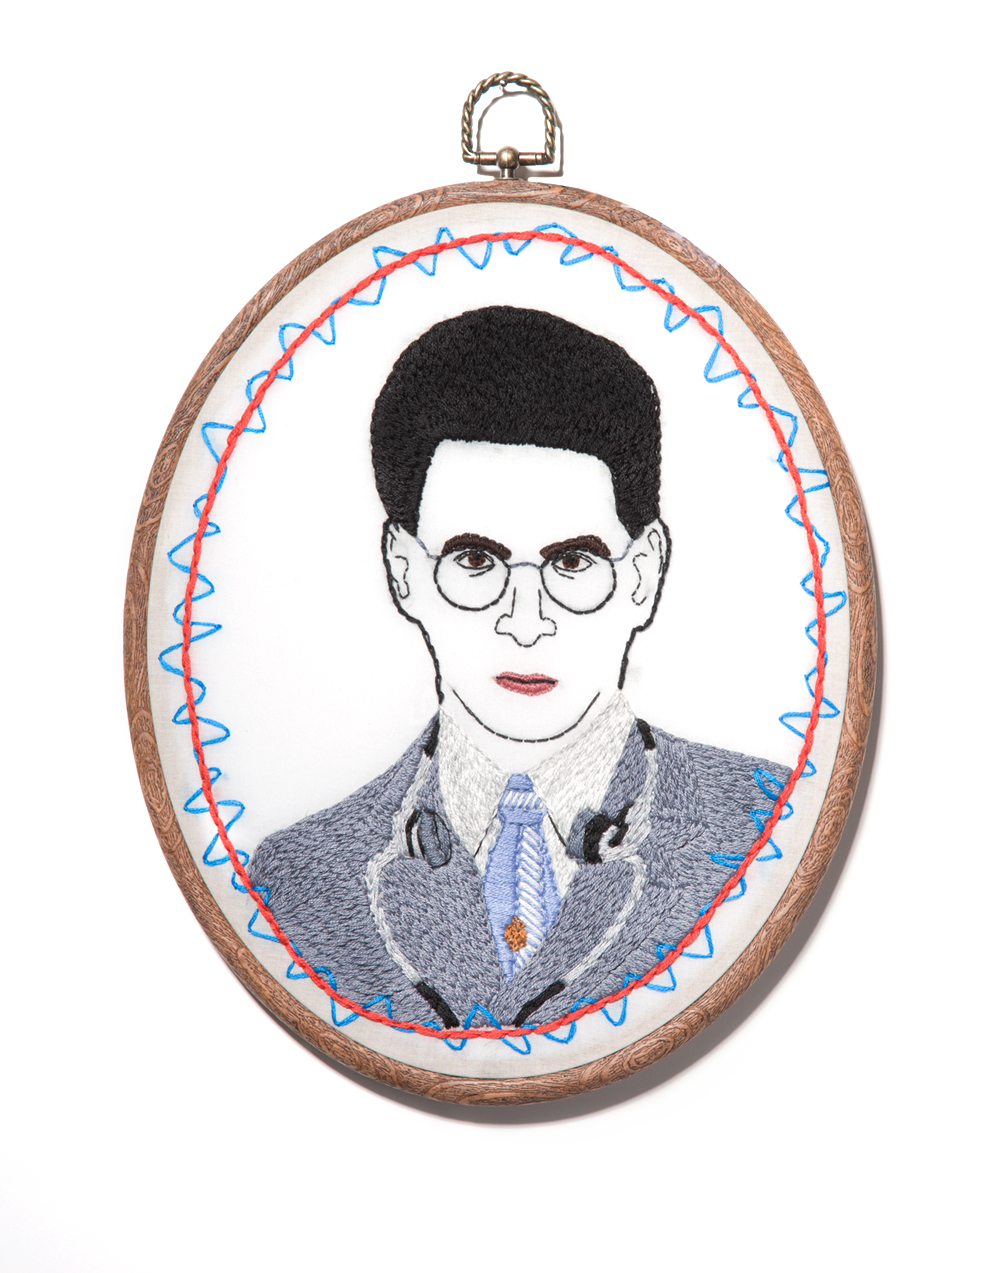 """Dr. Spengler"" Hand embroidery on cotton 8x10"" Mackenzie Mollo, 2014 (Available for sale/on display at San Diego Comic Con's art show! Artist #110)"